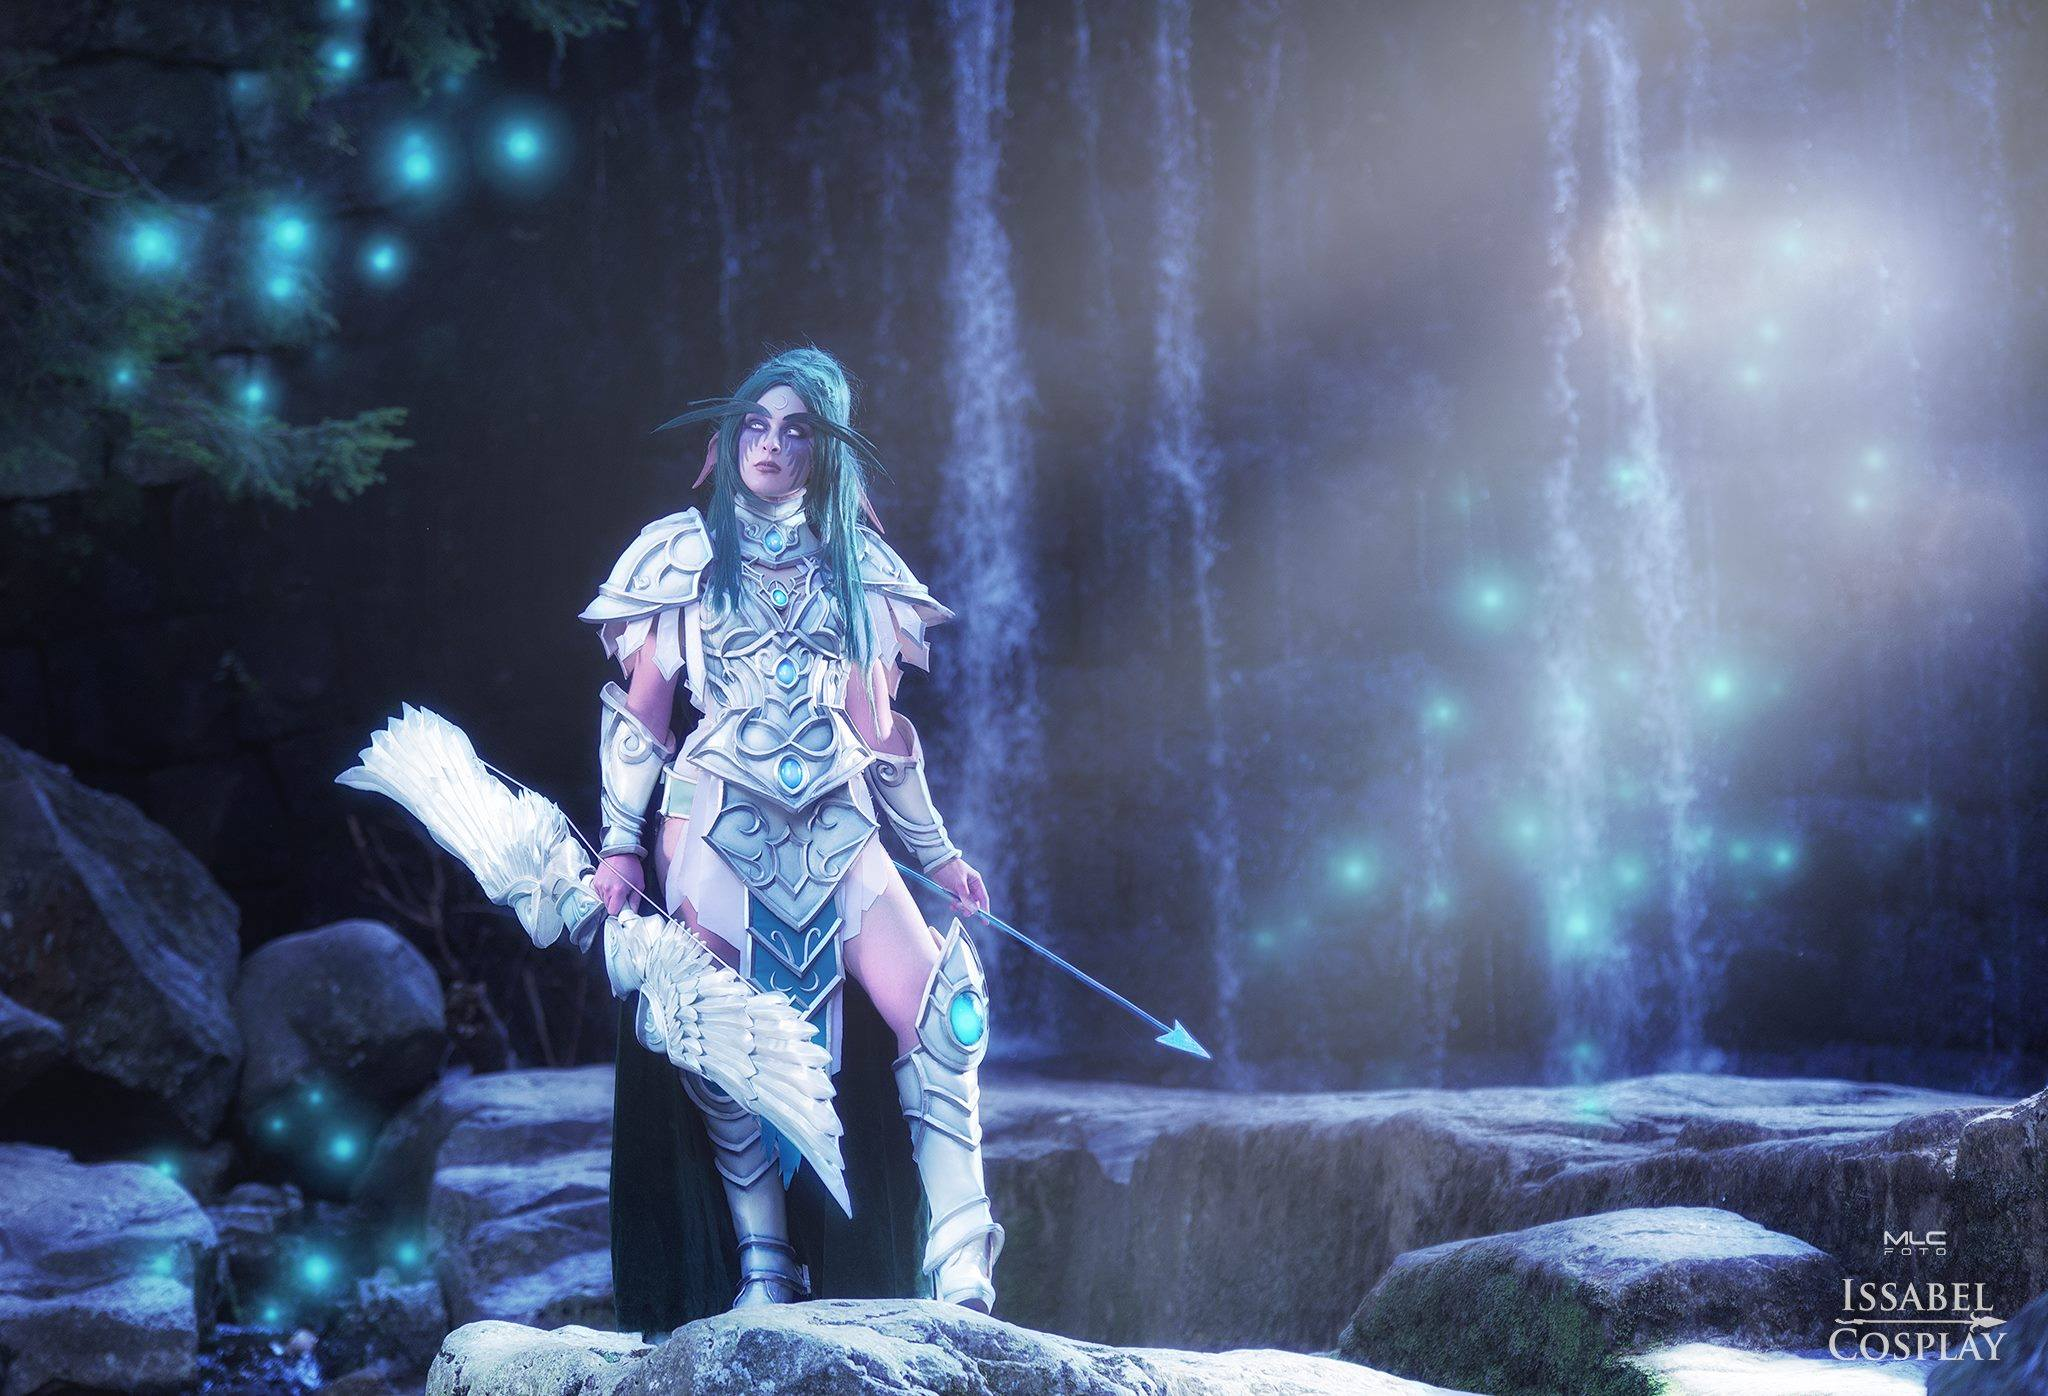 Heroes of the Storm: Tyrande Whisperwind Cosplay by Issabel